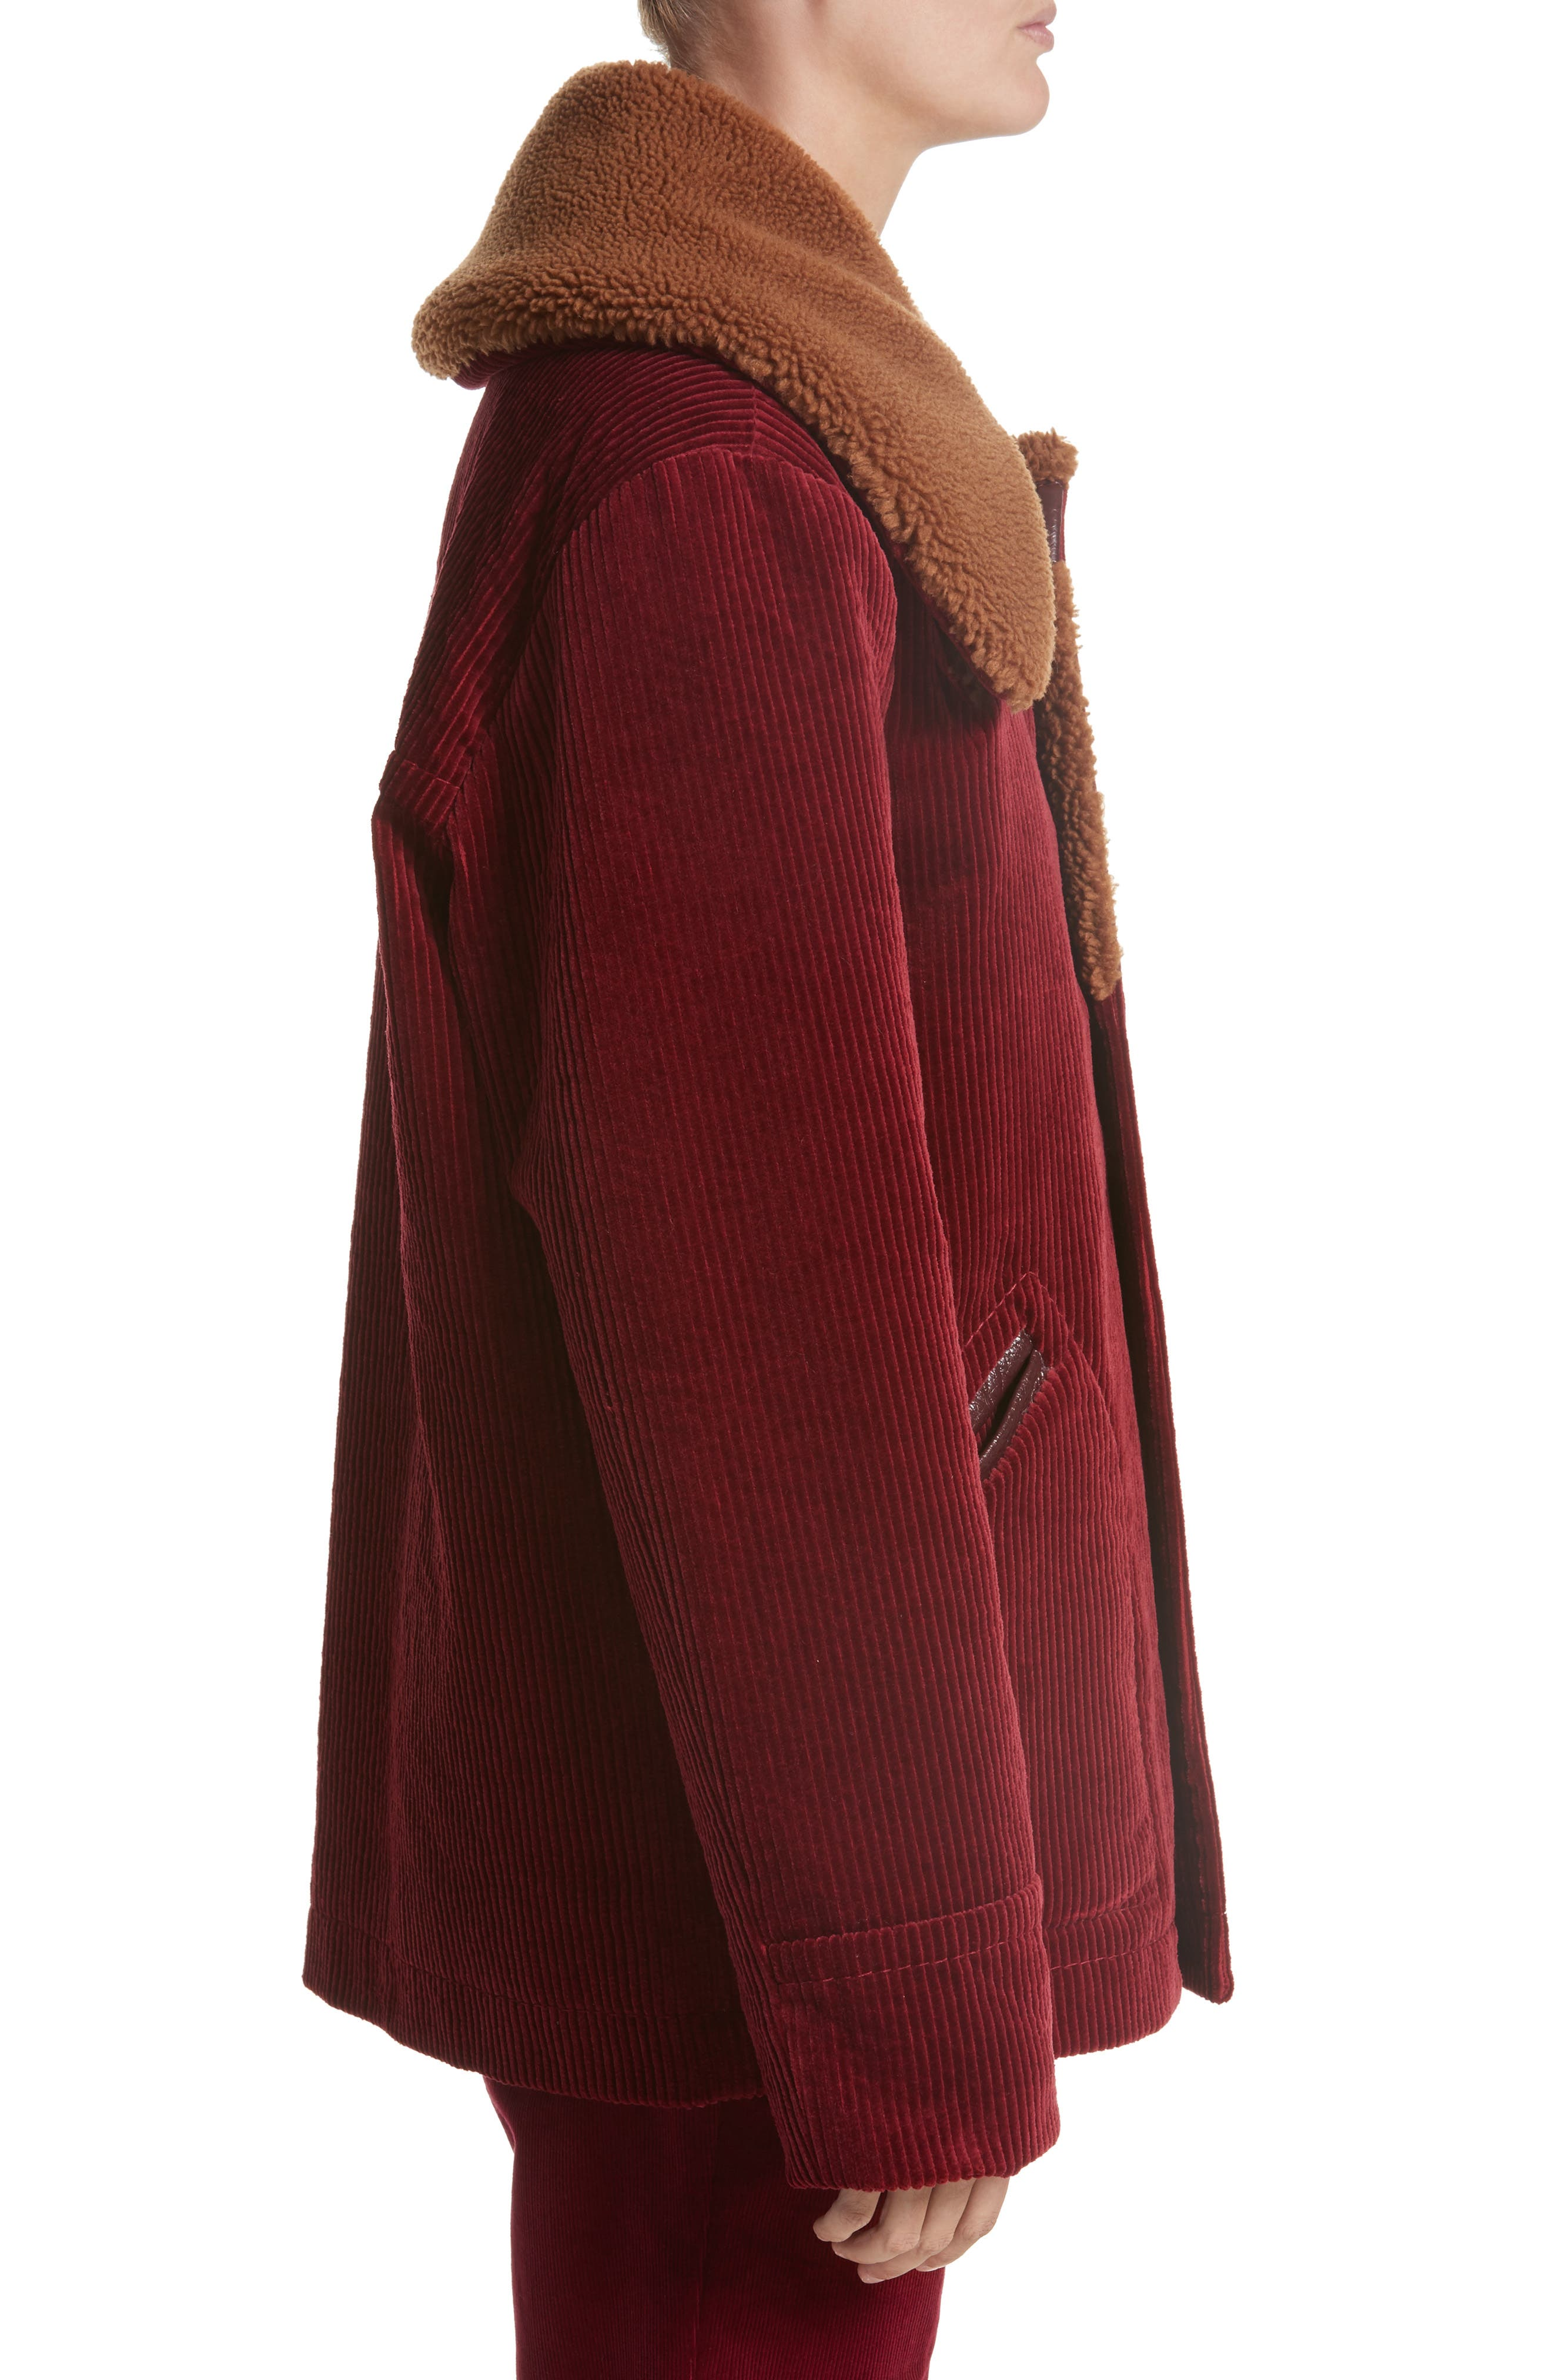 Alternate Image 3  - MARC JACOBS Corduroy Coat with Faux Shearling Collar